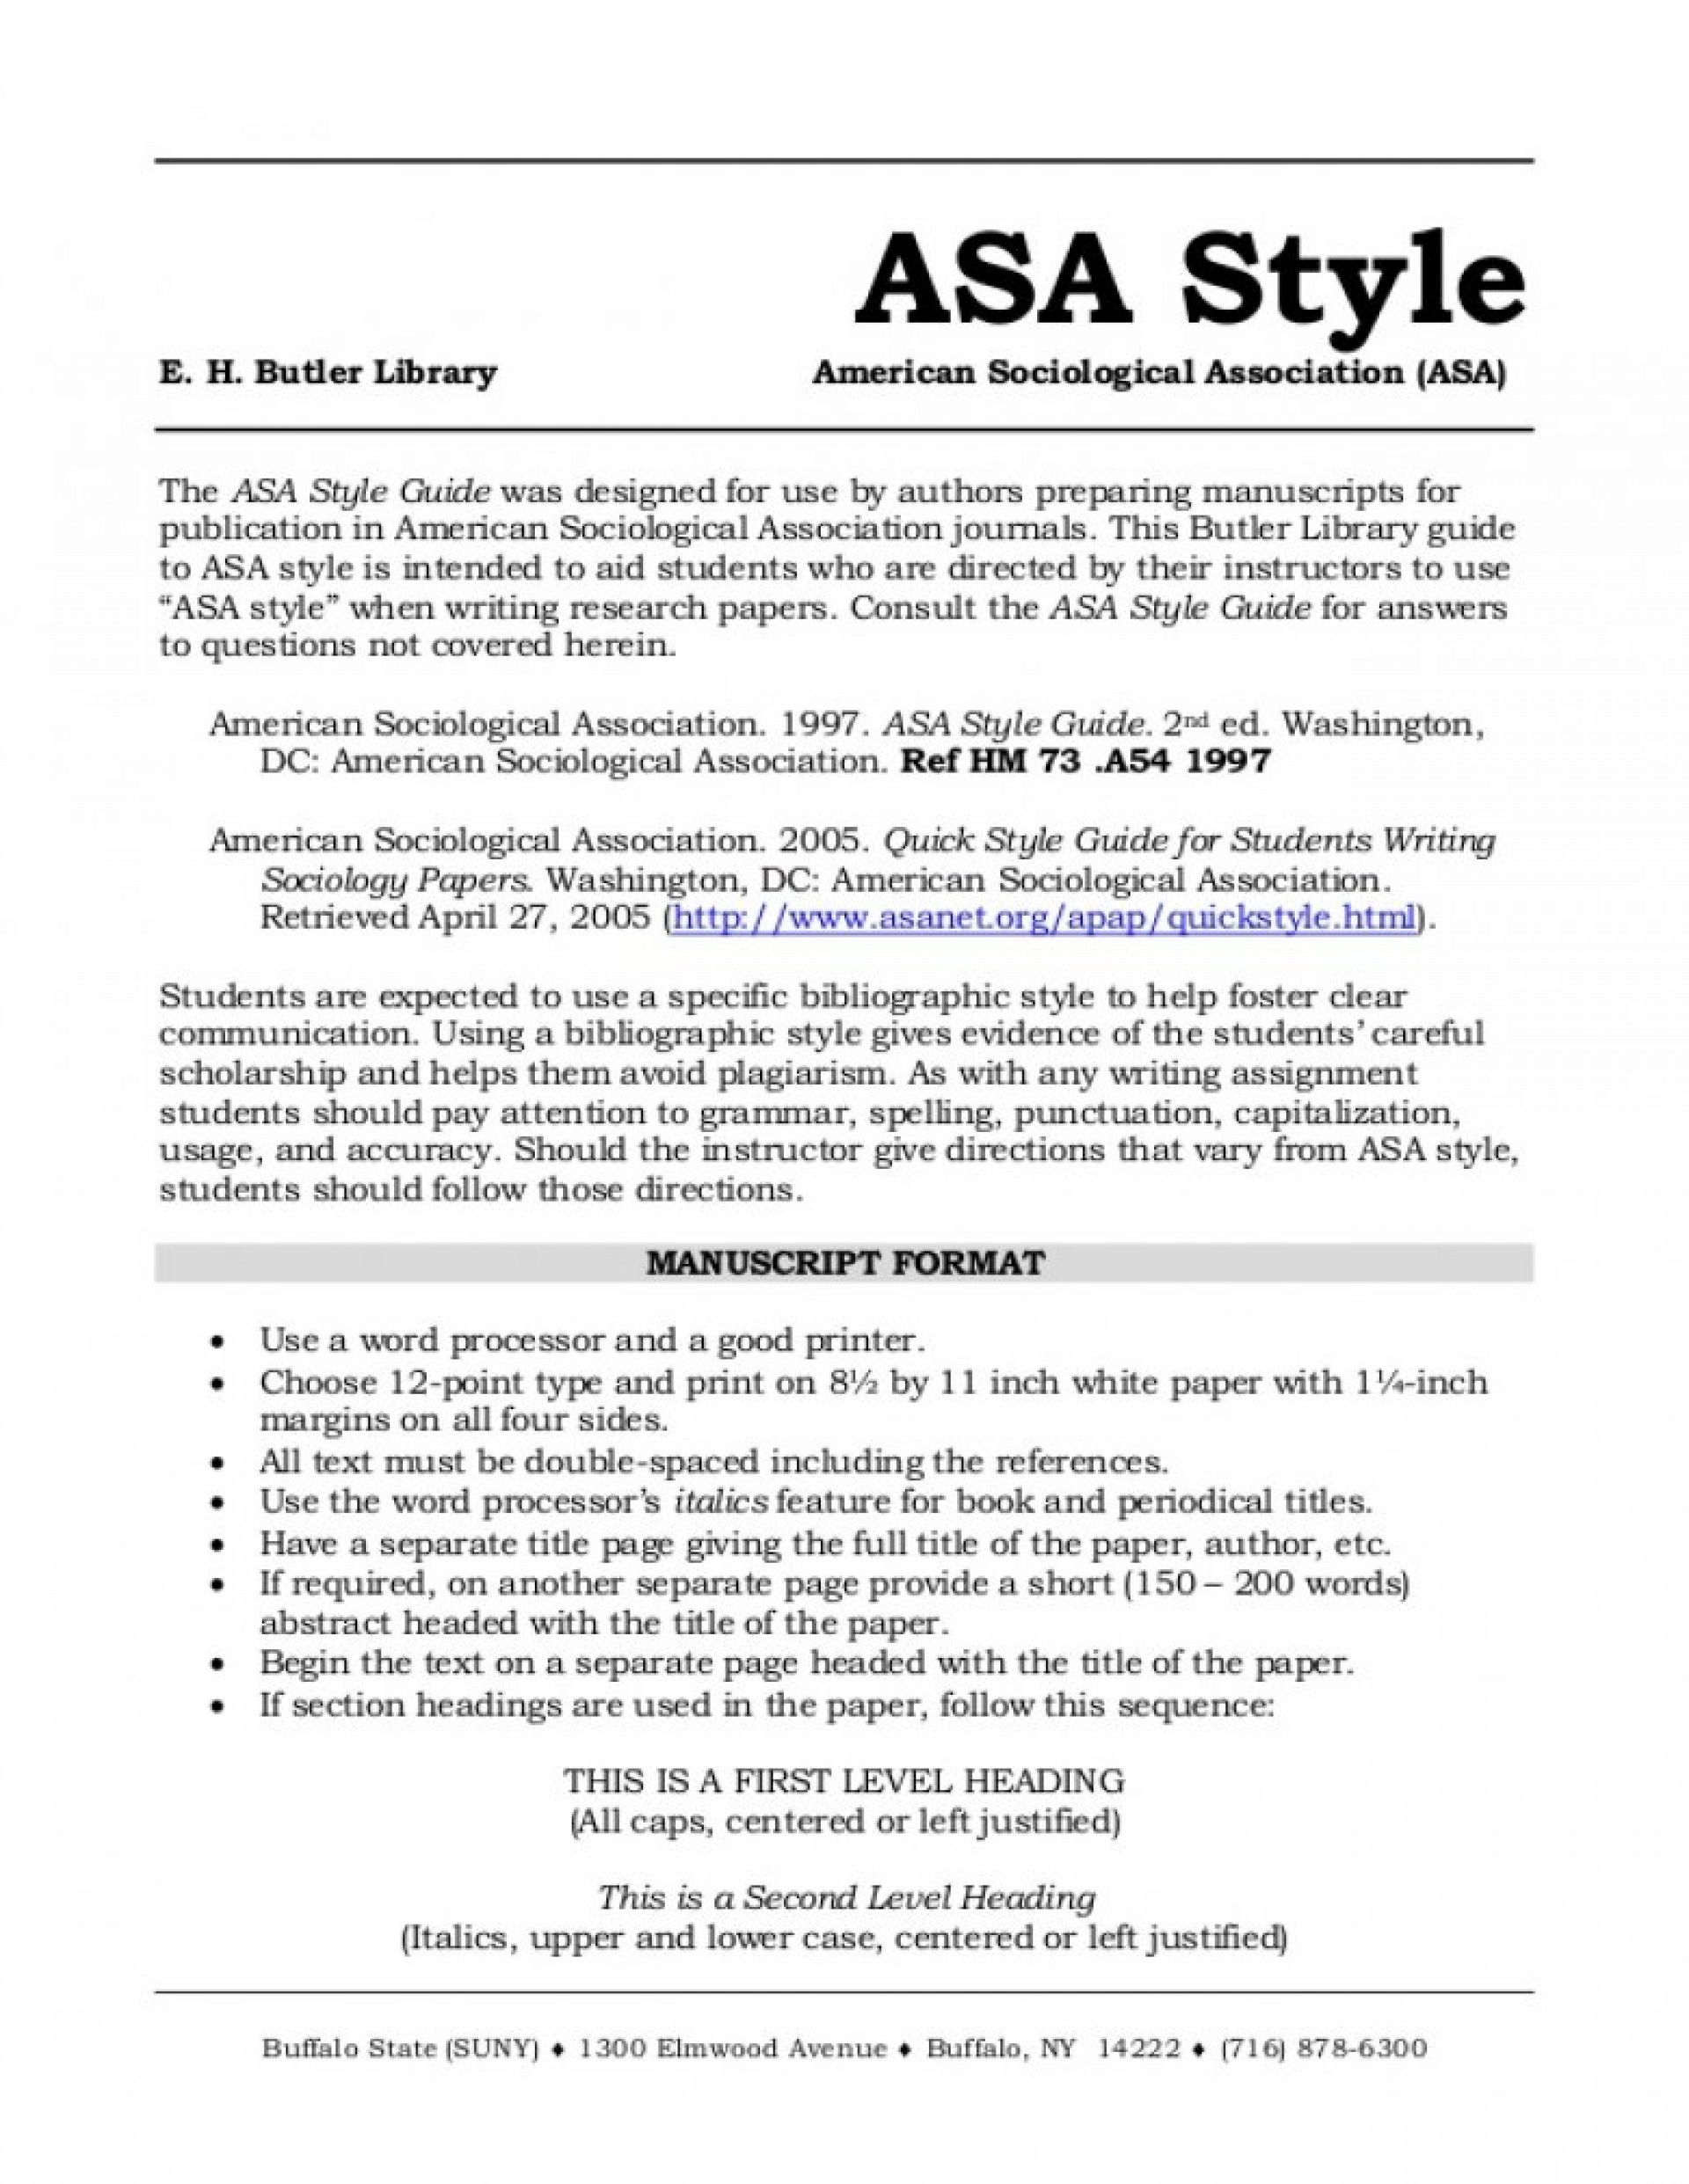 023 Asa Format Papers Essay Remarkable Reference Example Citation Website For Journal Article 1920